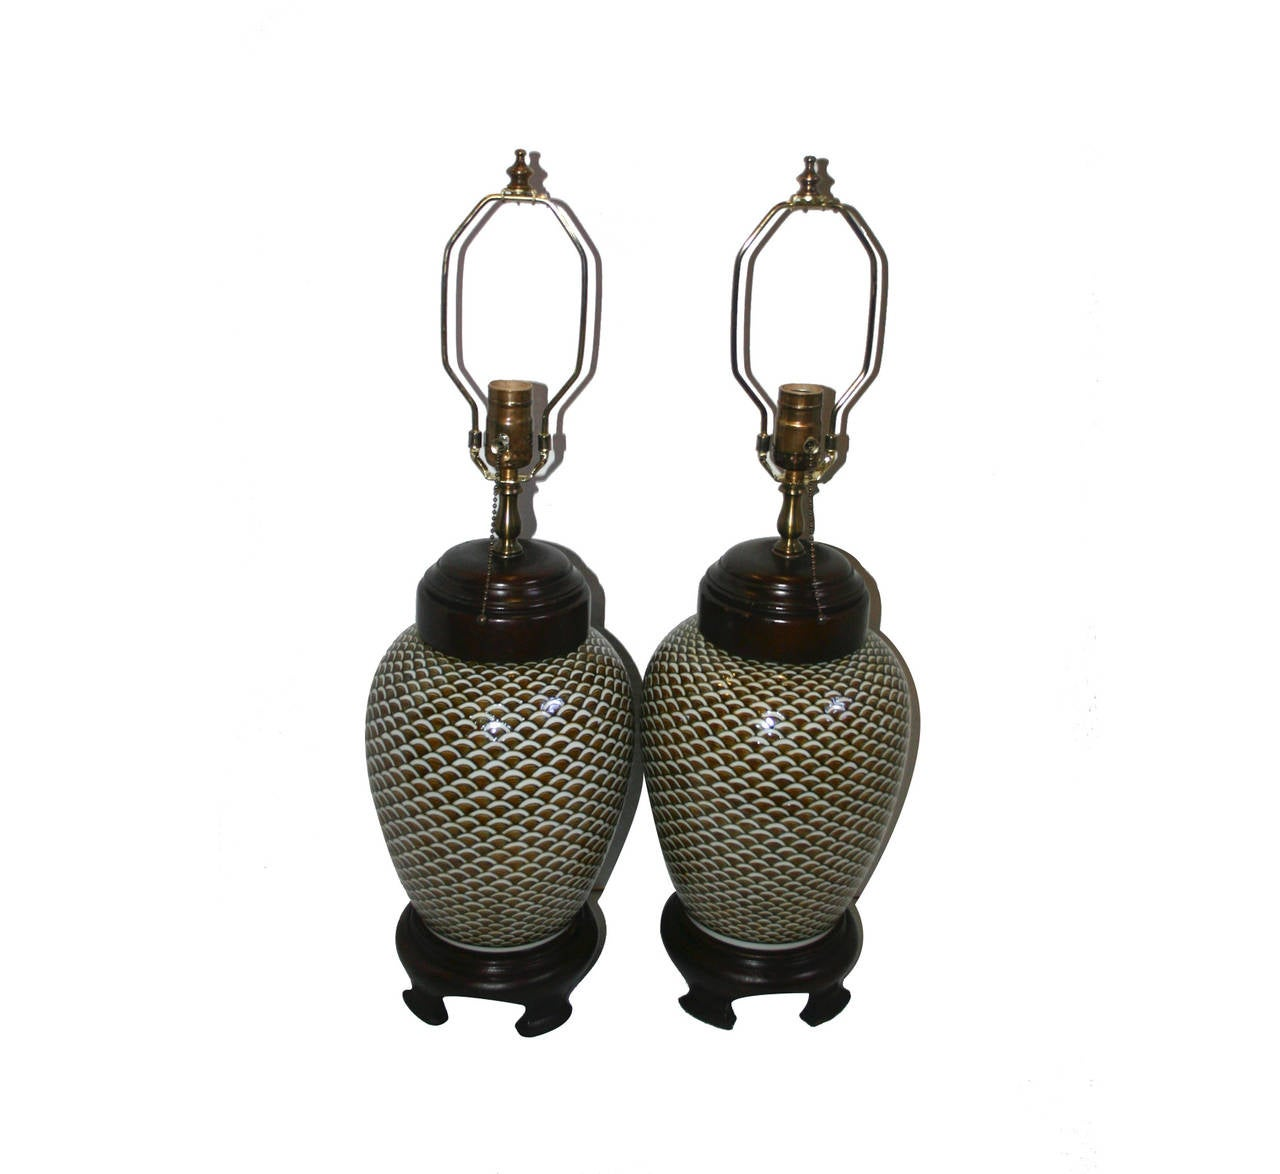 Pair of 1960s porcelain table lamps with detailed painted decoration.  Measures: 15